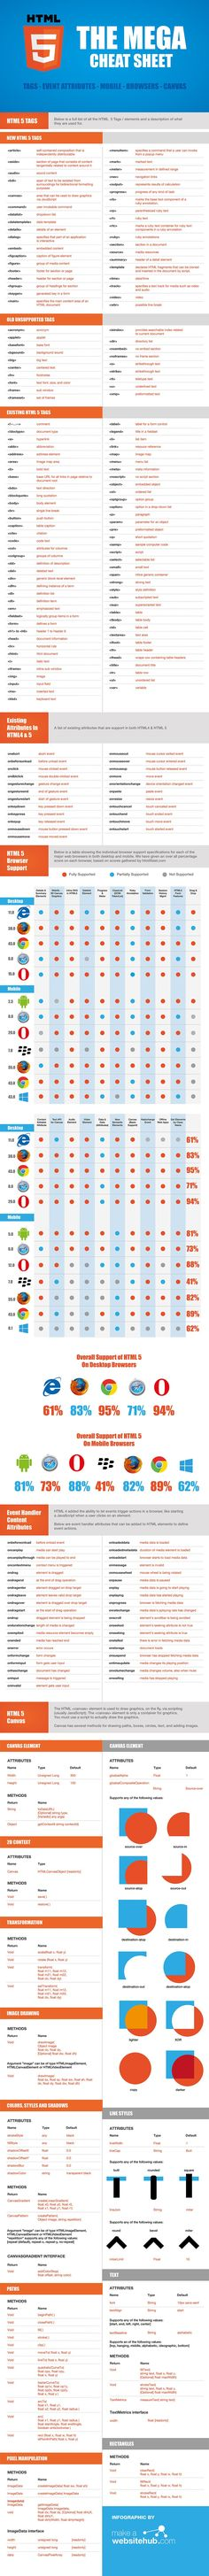 Html 5 Mega Cheat Sheet Infographic Html 5 Mega Cheat Sheet Infographic Topic Webdesign Design Web, Website Design, Graphic Design, Type Design, Html Cheat Sheet, Cheat Sheets, Computer Programming, Computer Science, Design Development